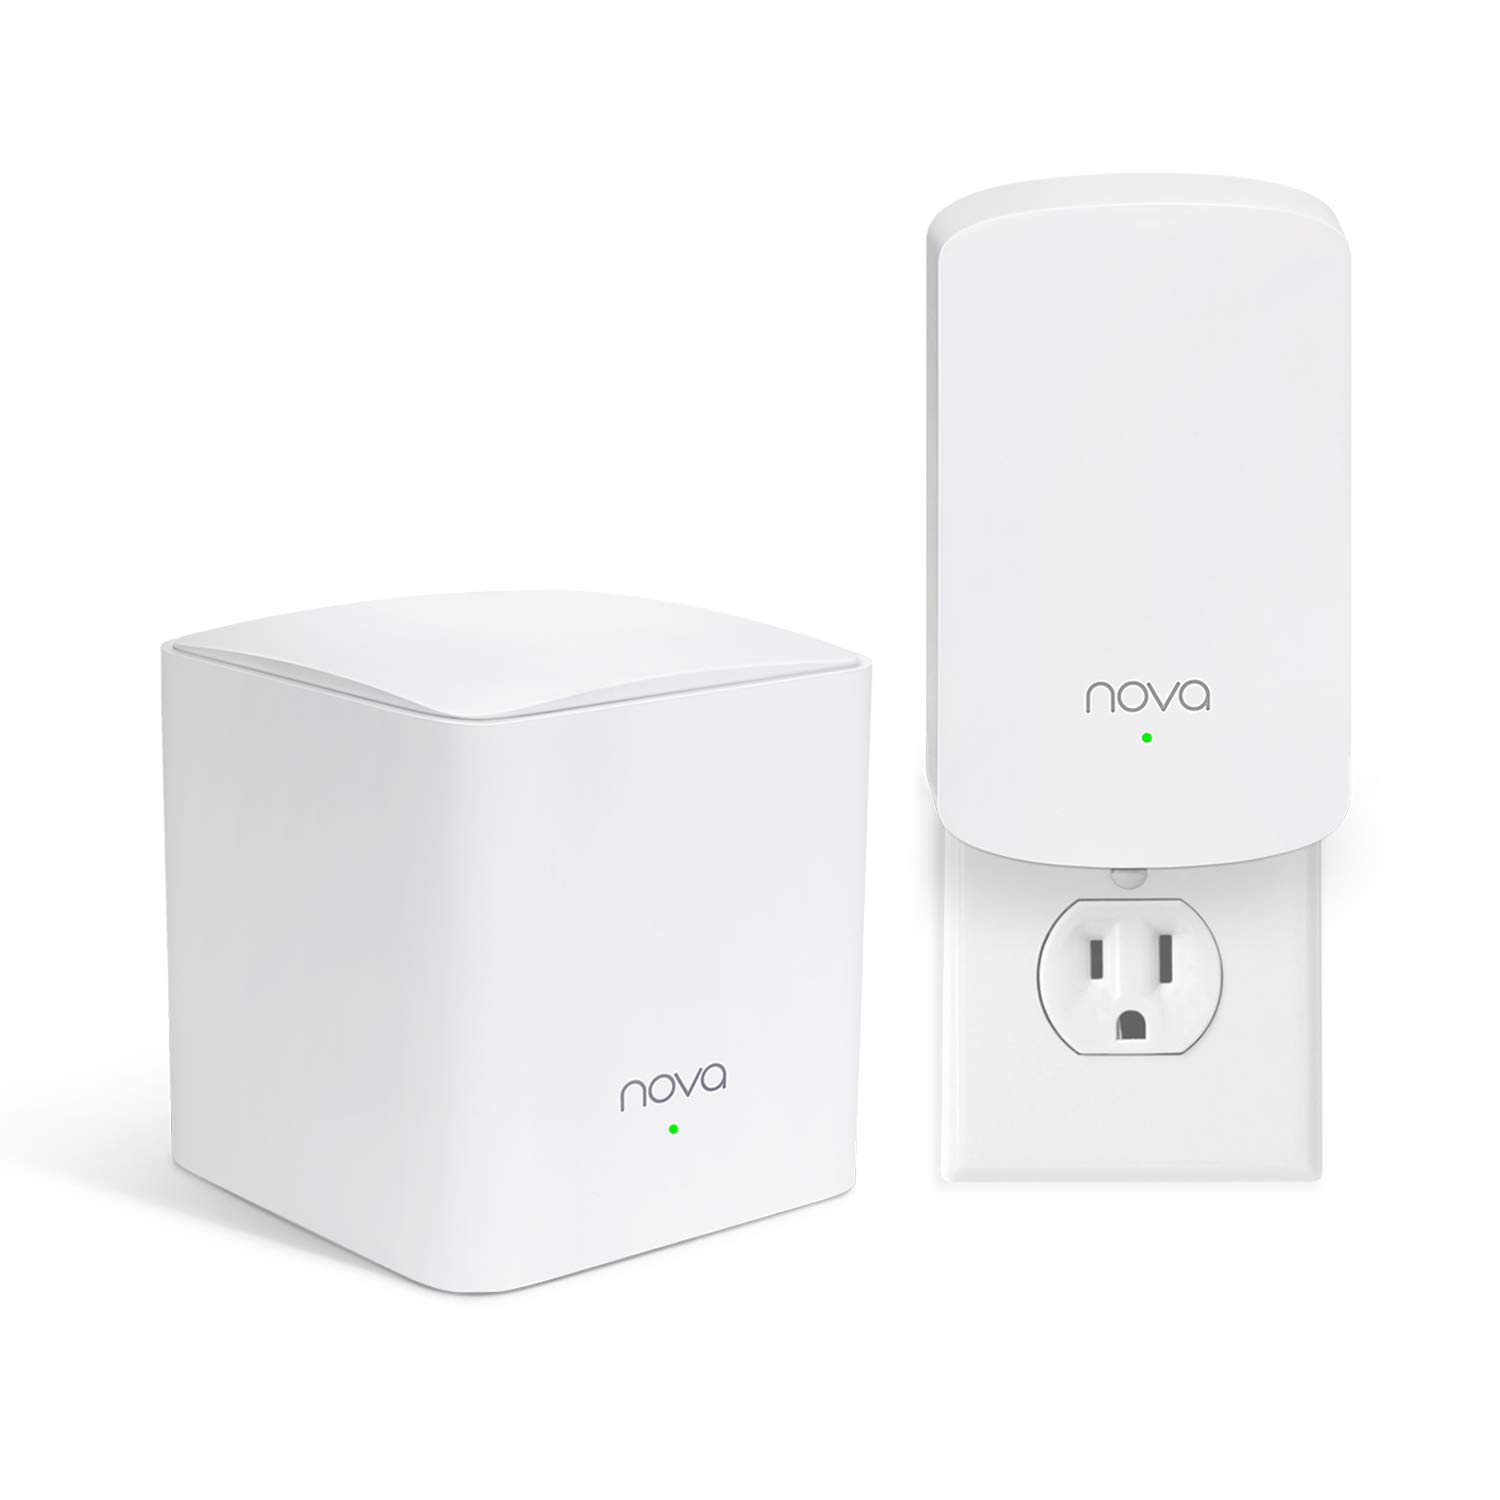 Tenda Nova MW5(2-Pack) Wall-Plug Whole Home Mesh WiFi System, Coverage up to 2,500 sq. ft, Plug and Play, Router/WiFi Extender Replacement, Gigabit Connection to Your Cable Modem by Tenda